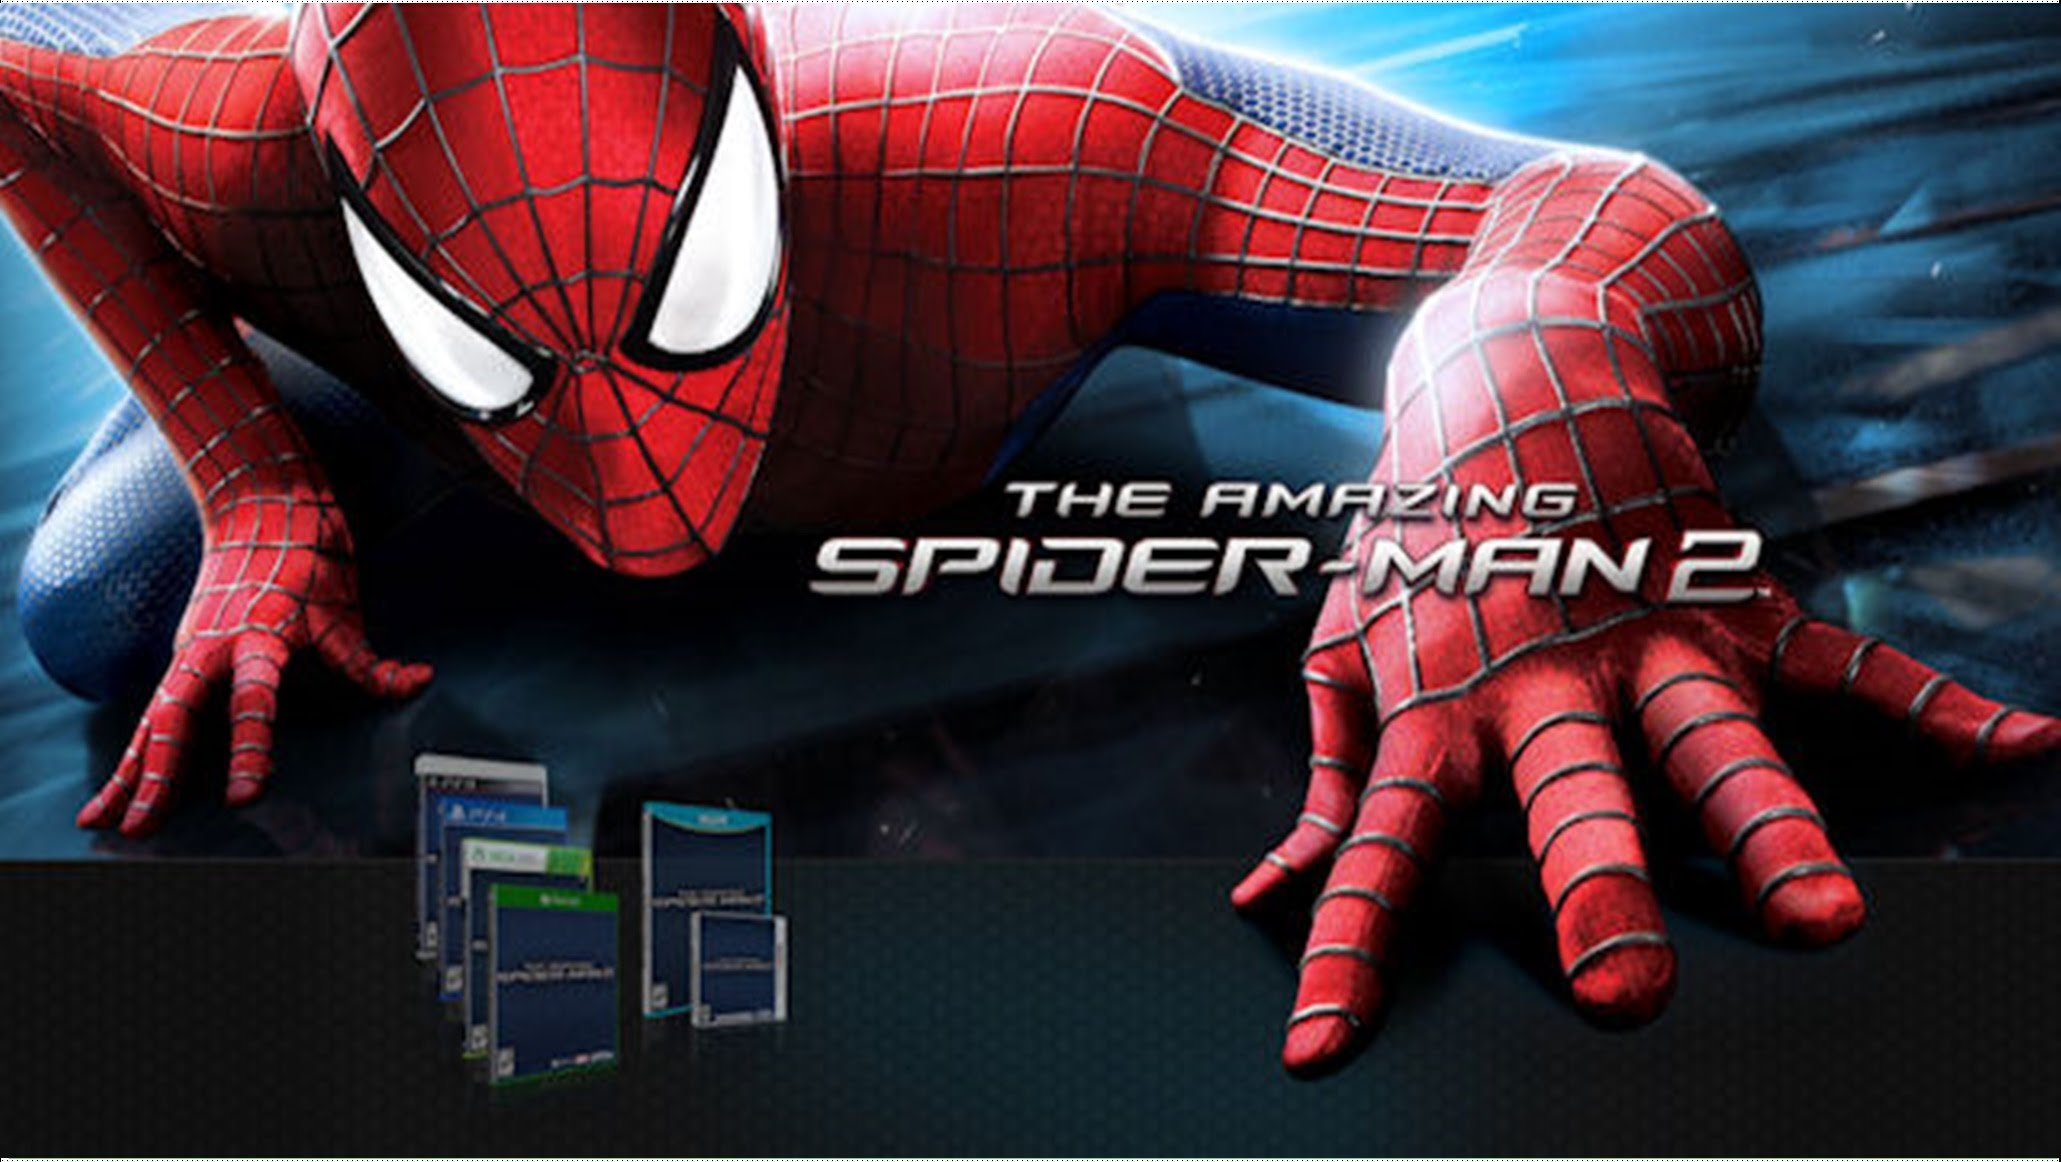 Wonderful Spider man Wallpapers High Definition Images 2061x1162